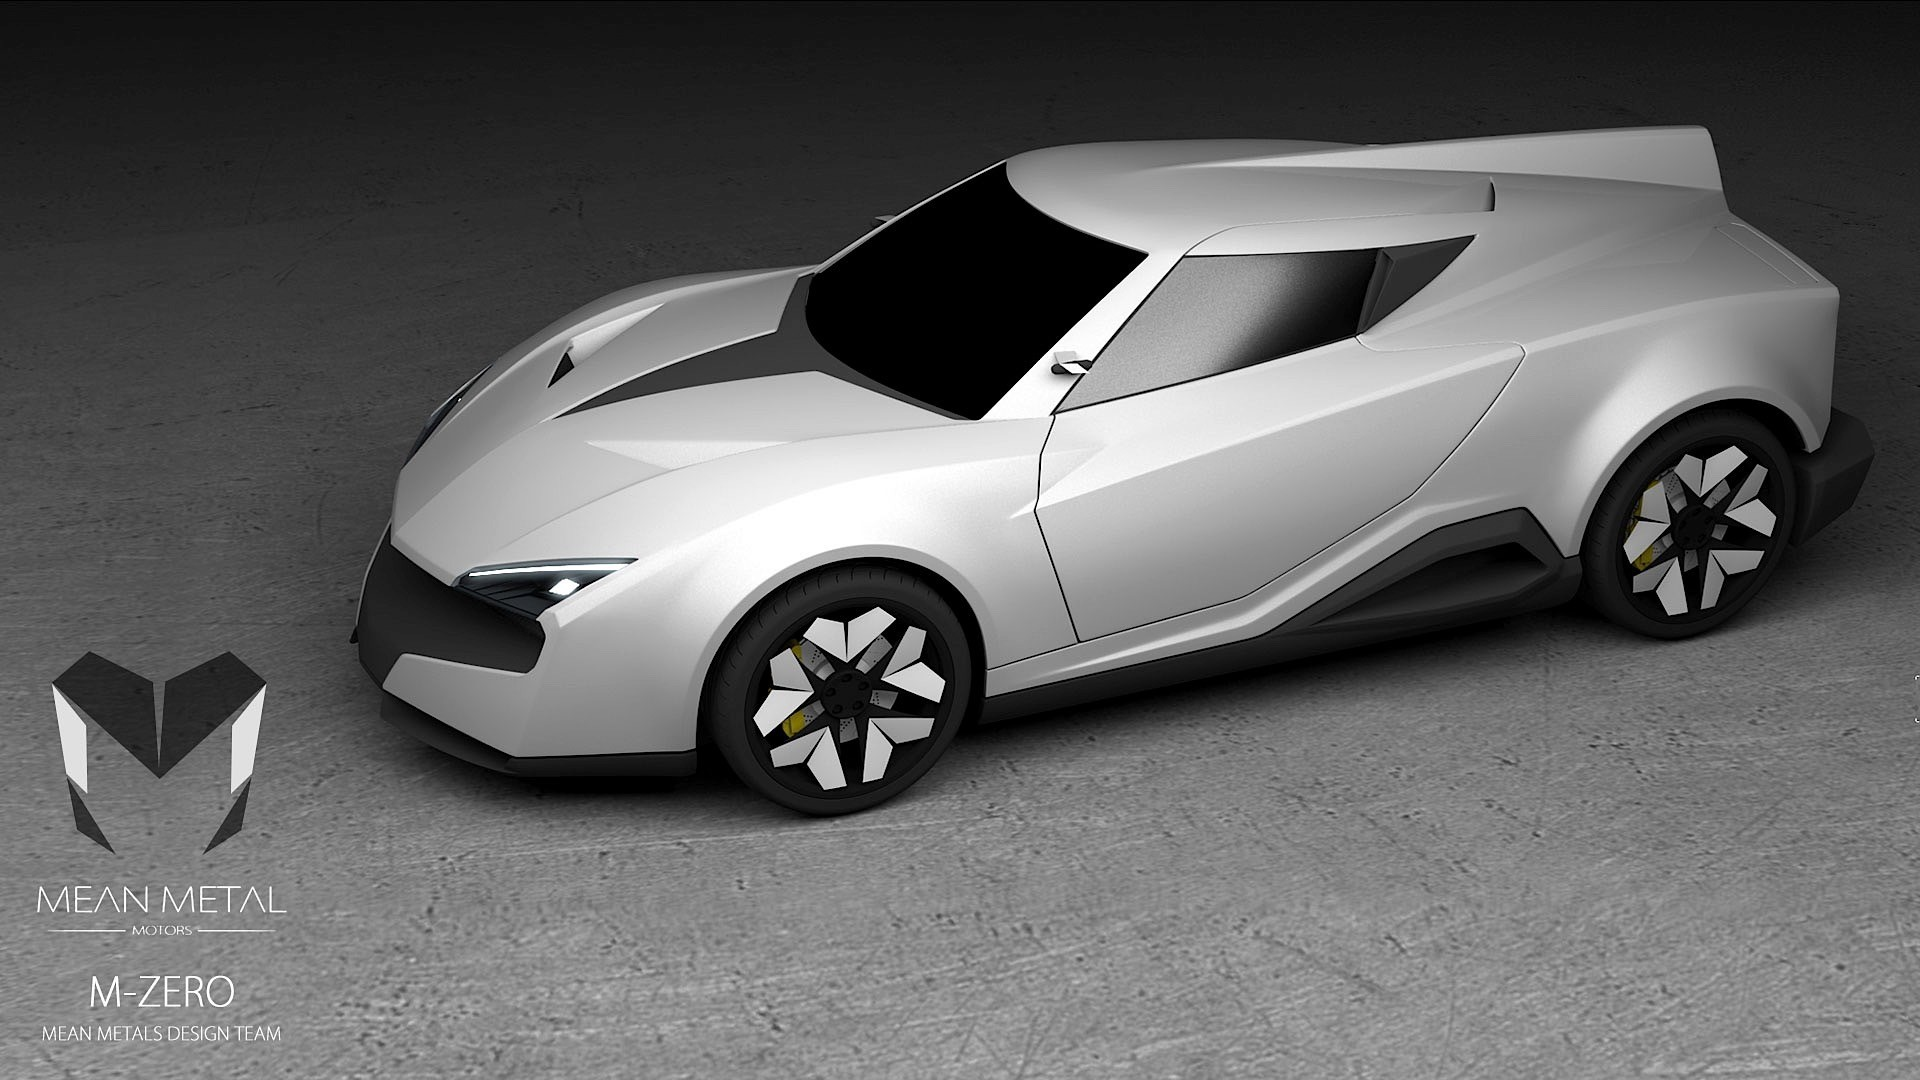 M-Zero Is India\'s First Supercar, But It Needs $7 Million to ...